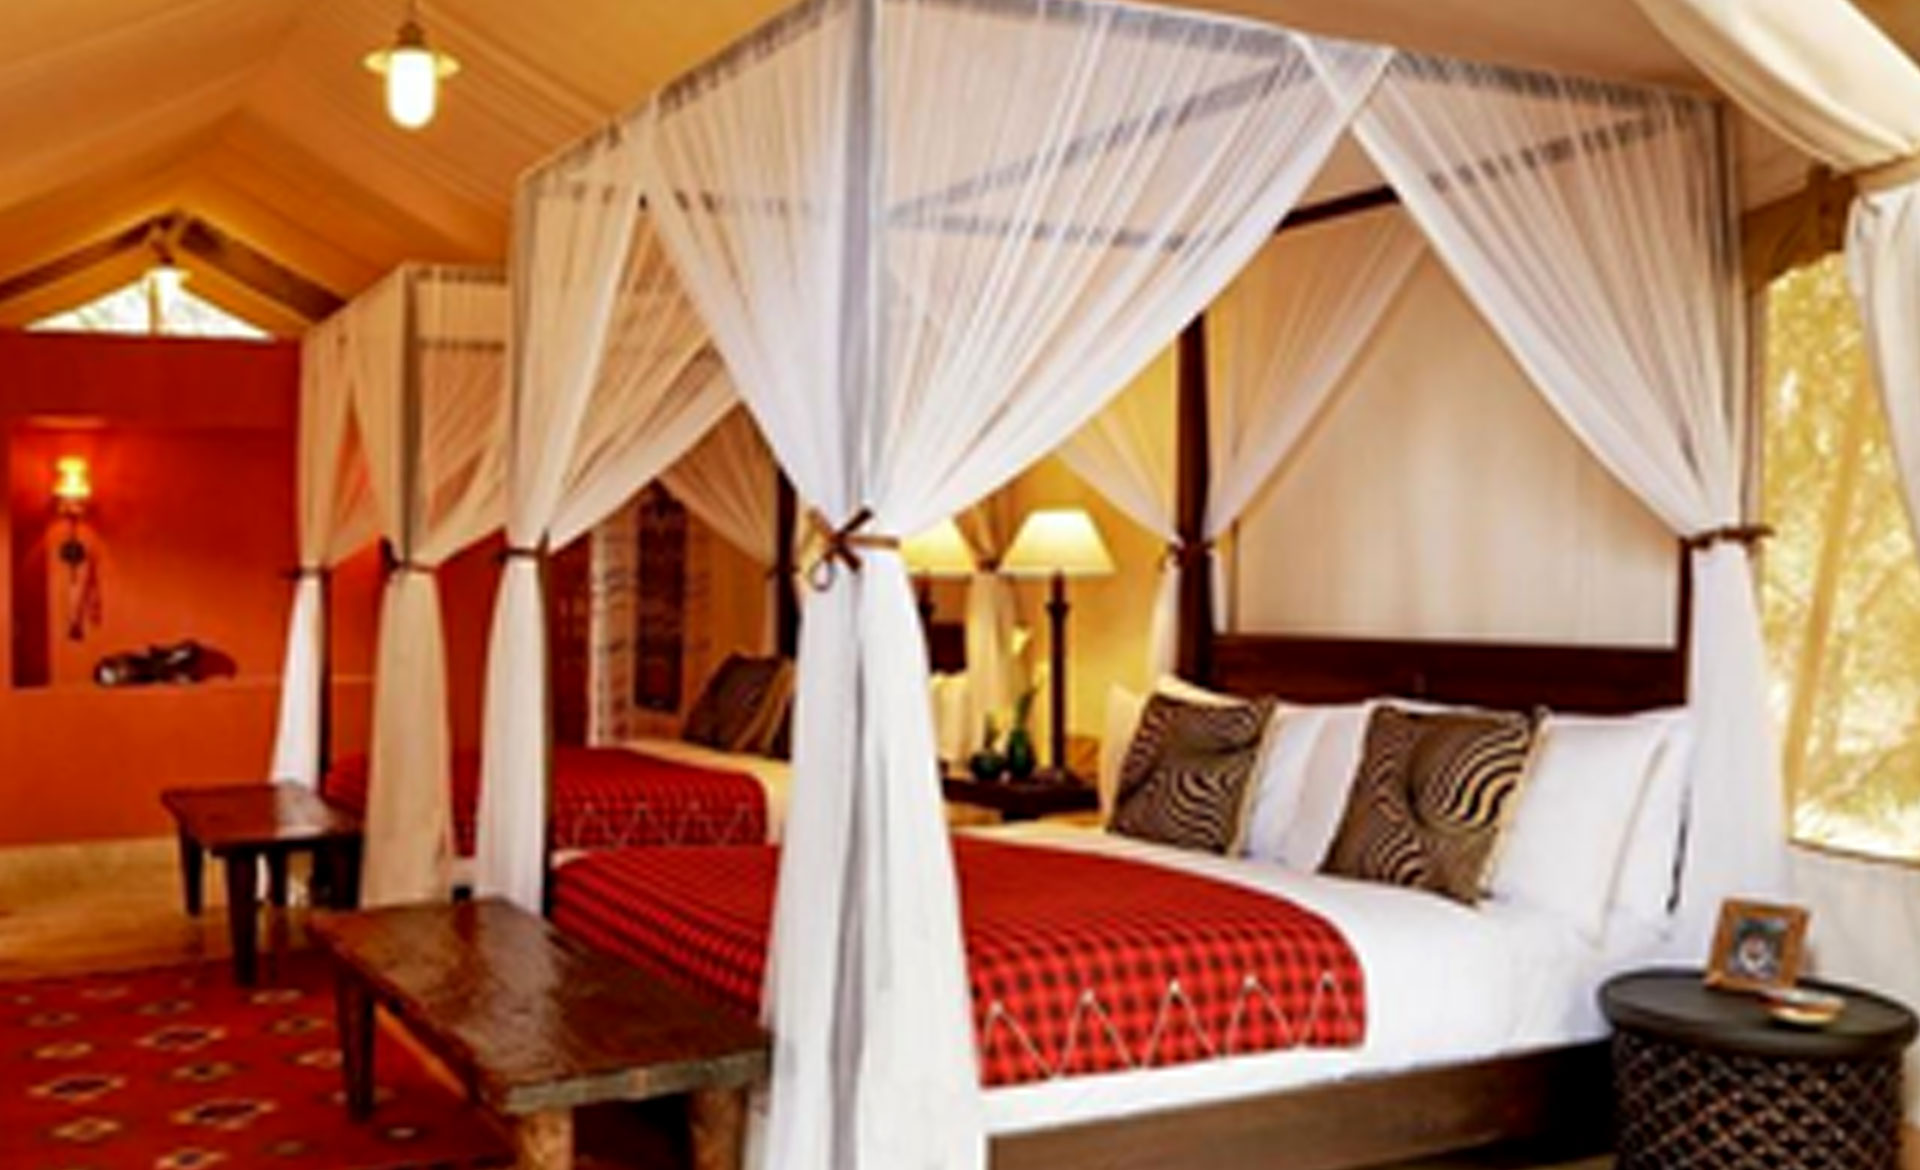 Diani_travel_center_diani_tours_and_safaris_3_Days_masai_mara_by_air_diani_masai_mara-air_Fairmont_Mara